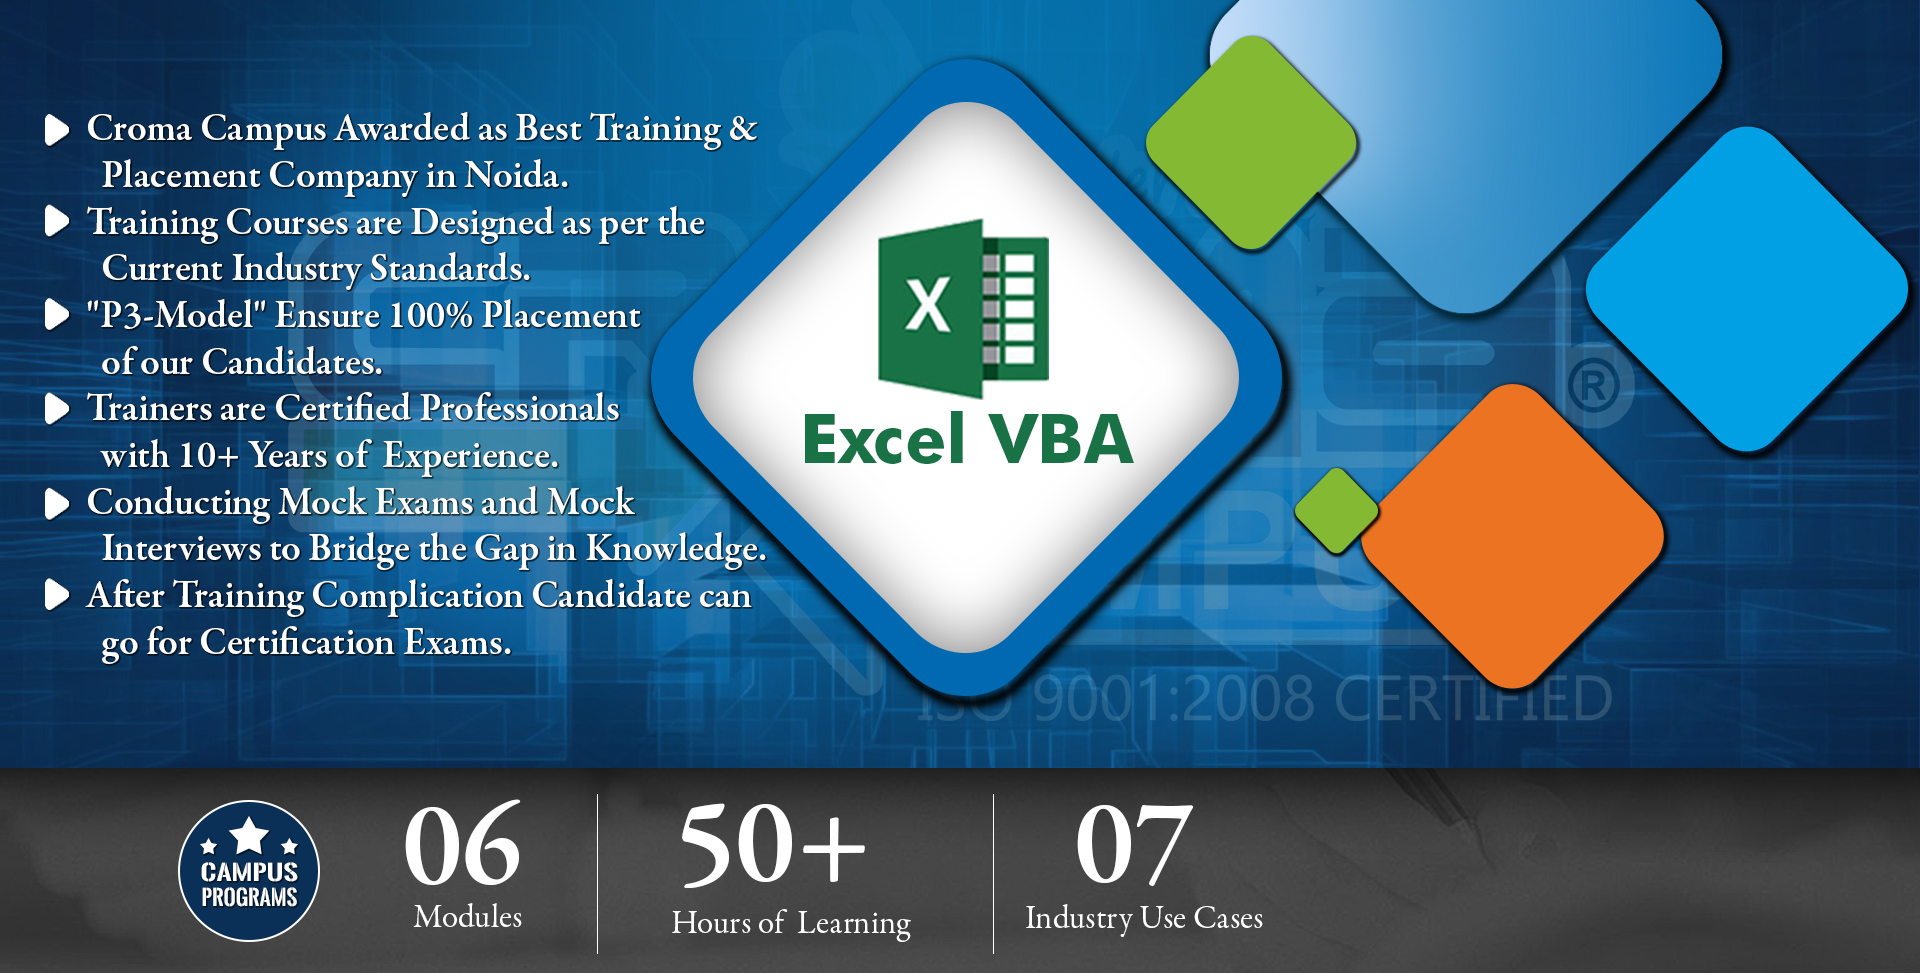 Excel VBA Training in Delhi